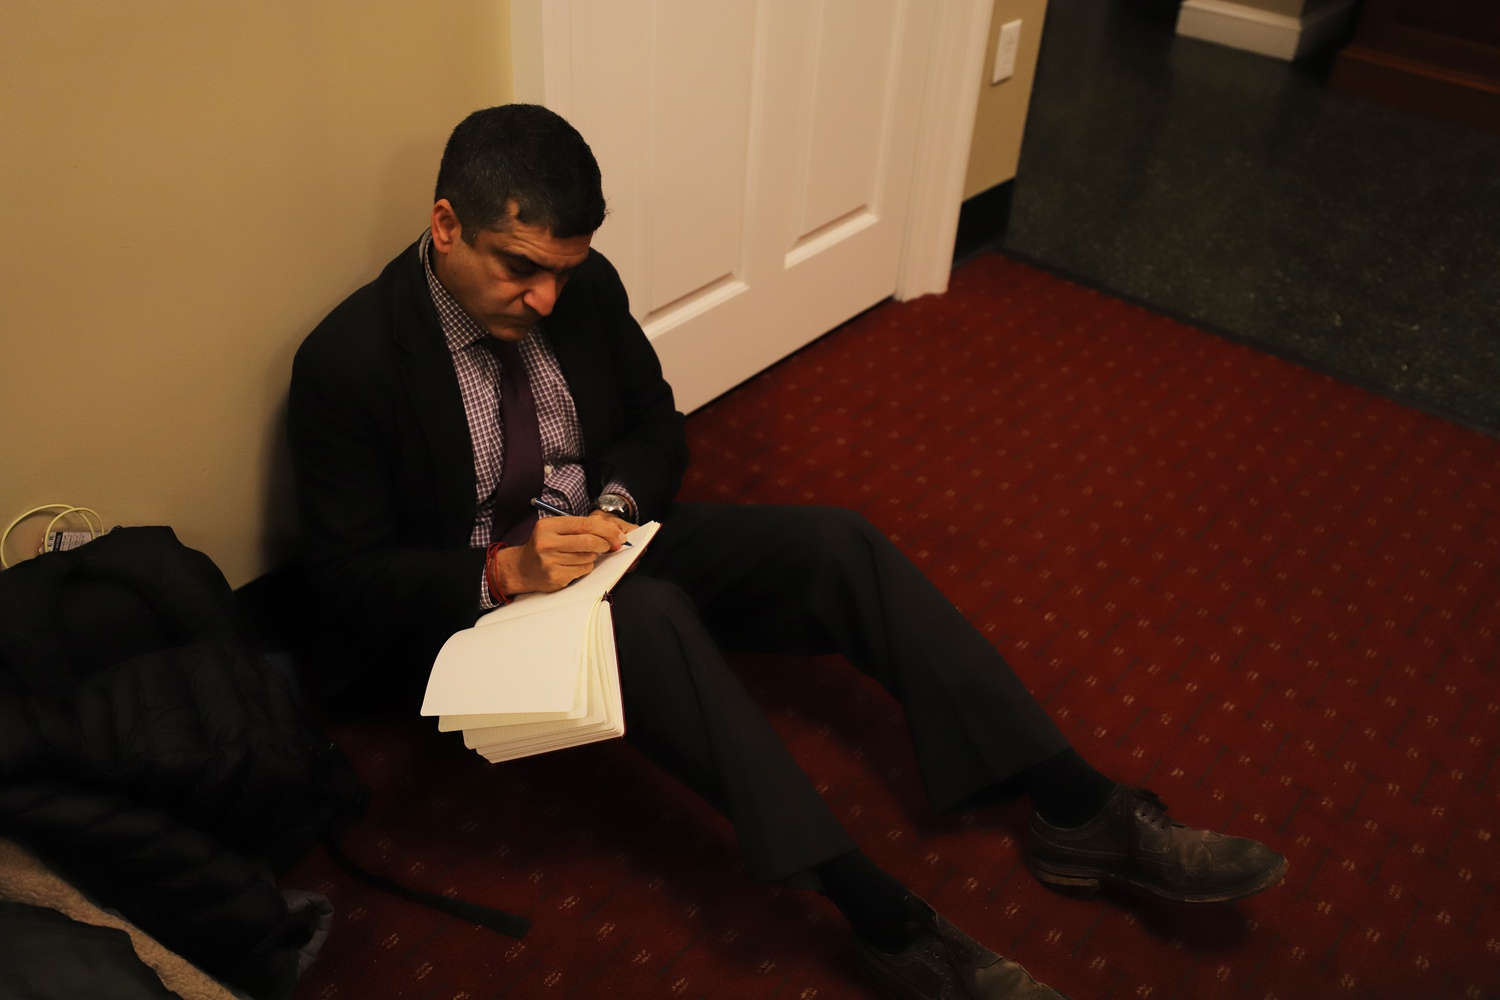 Dean of the College Rakesh Khurana takes notes while watching students occupy the Harvard Office of Admissions and Financial Aid.